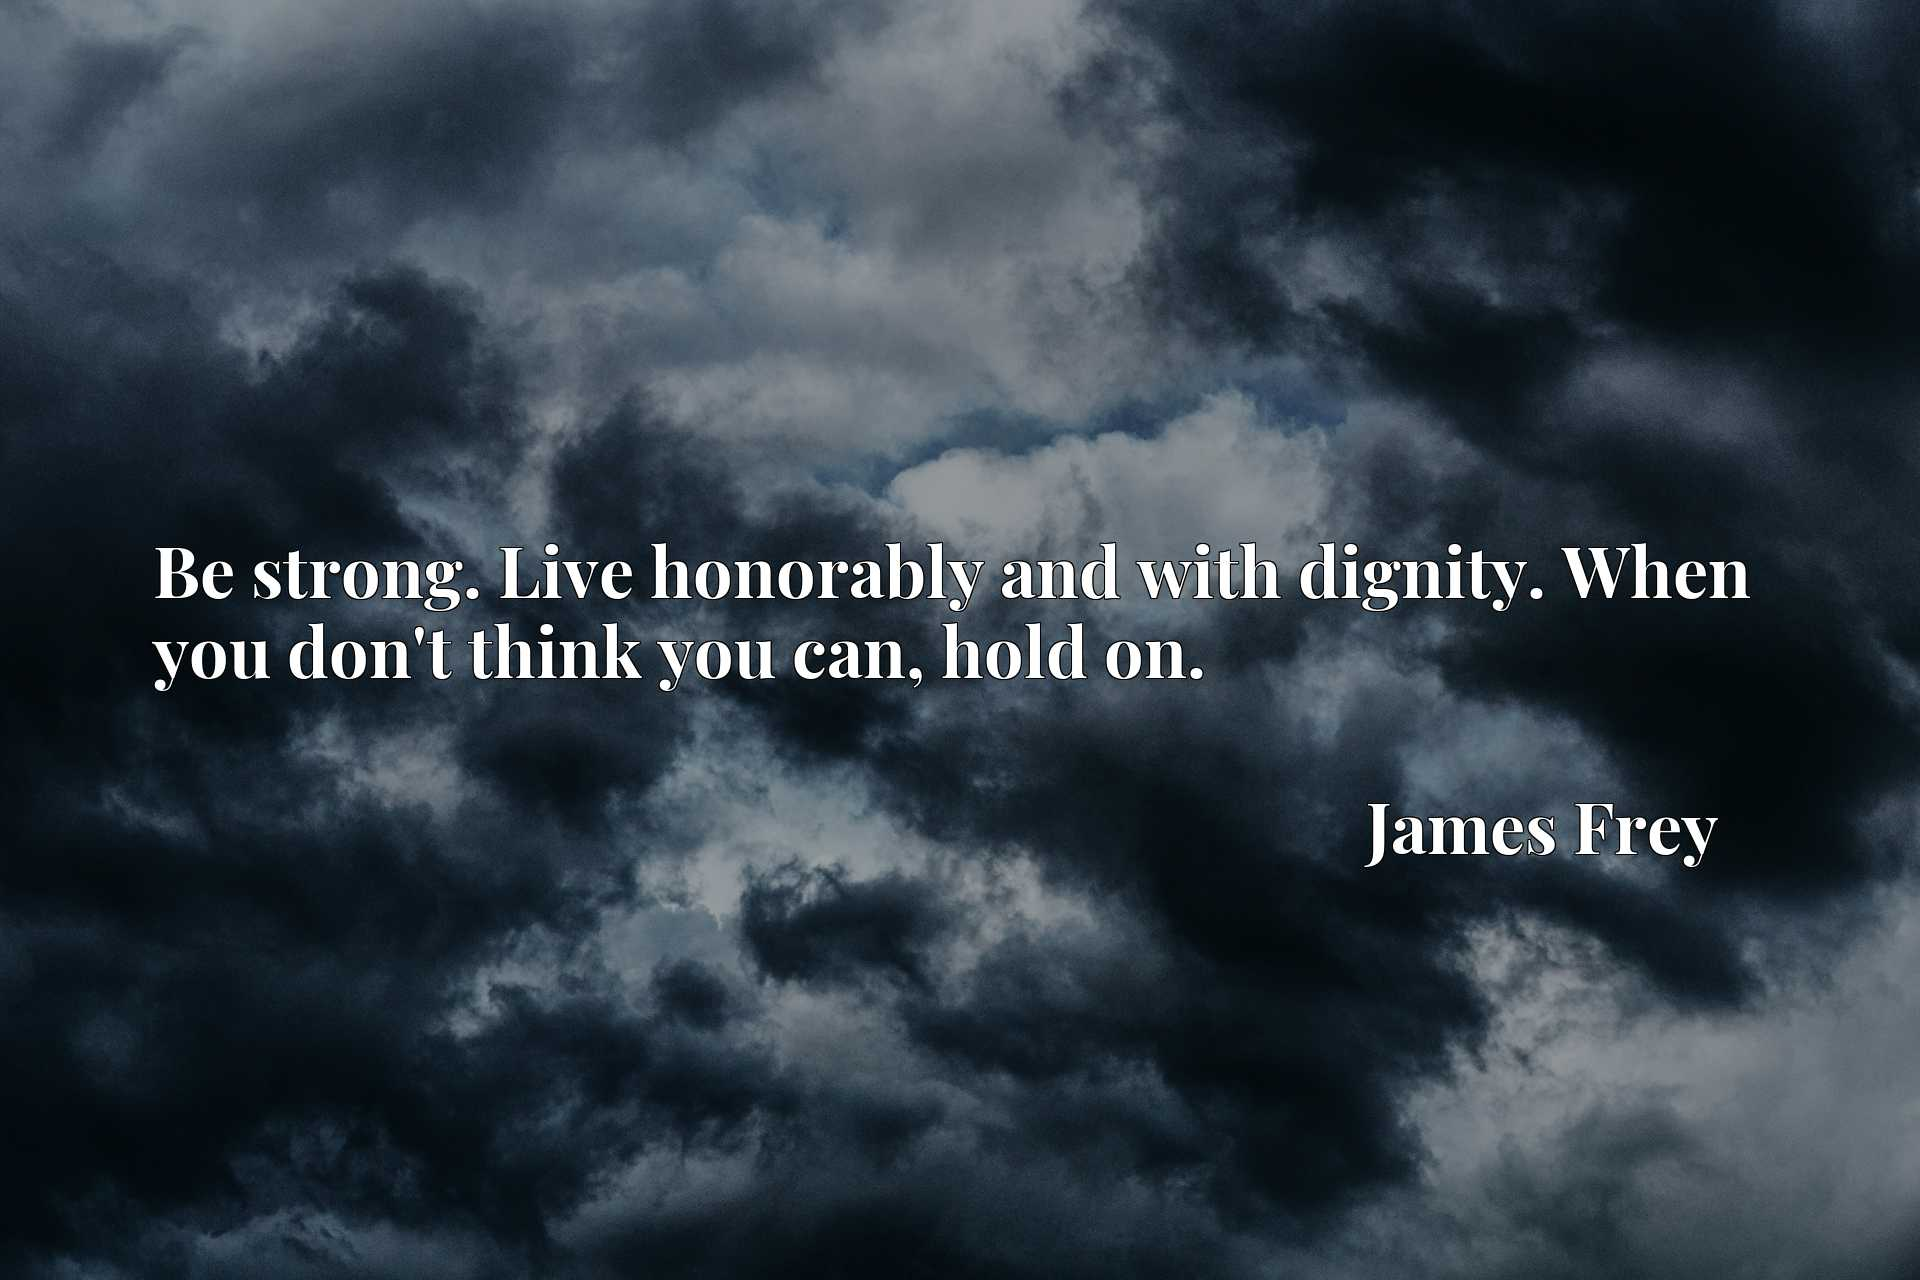 Quote Picture :Be strong. Live honorably and with dignity. When you don't think you can, hold on.